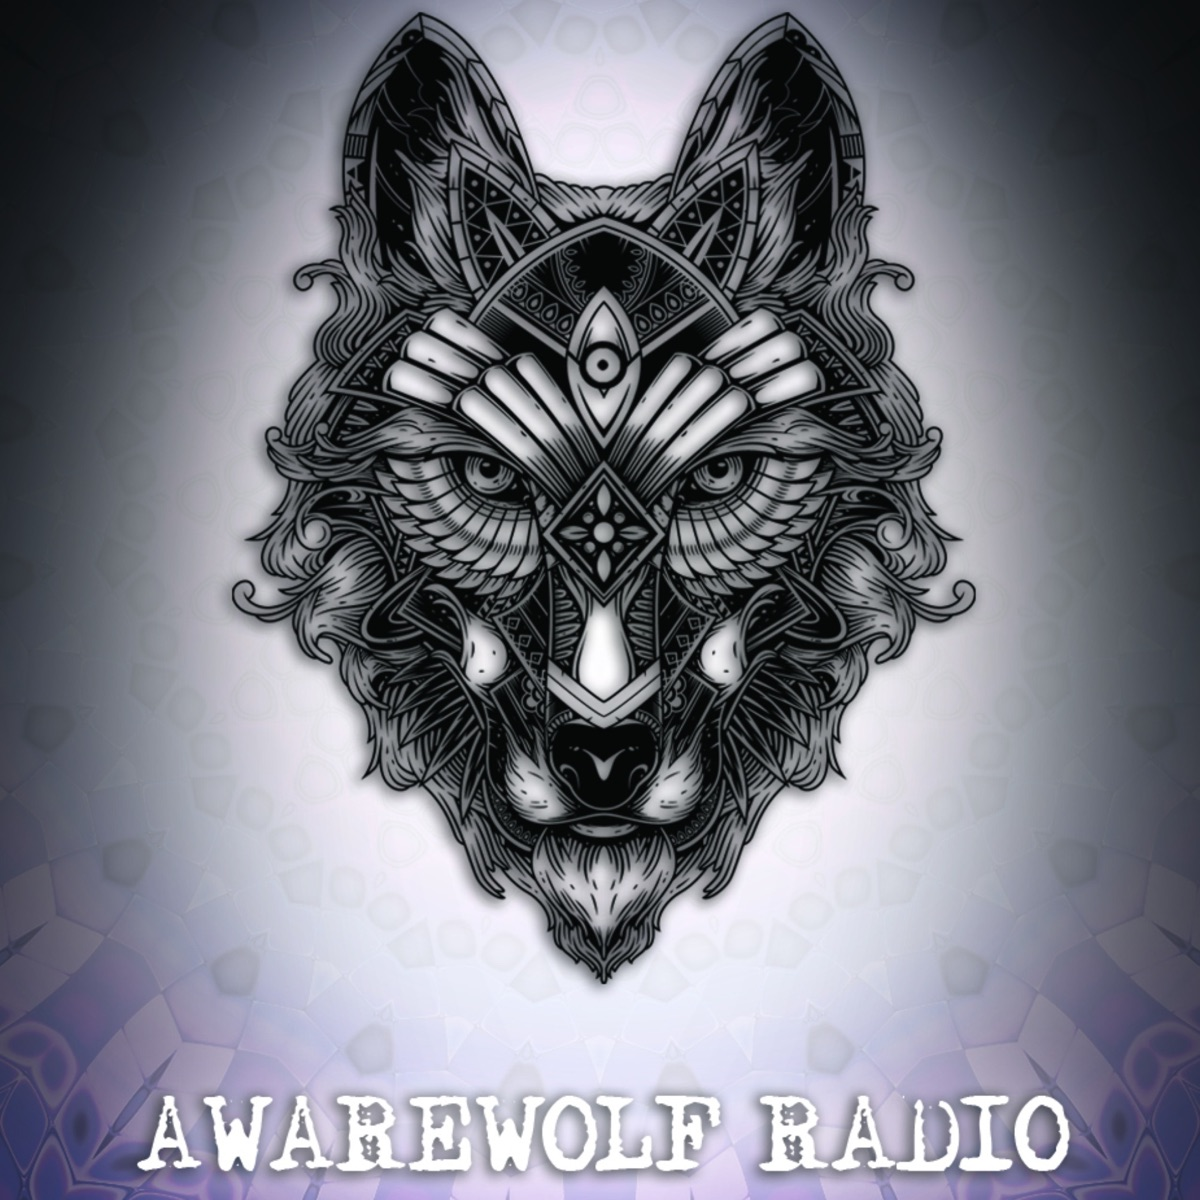 Awarewolf Radio: A Discussion on Censorship